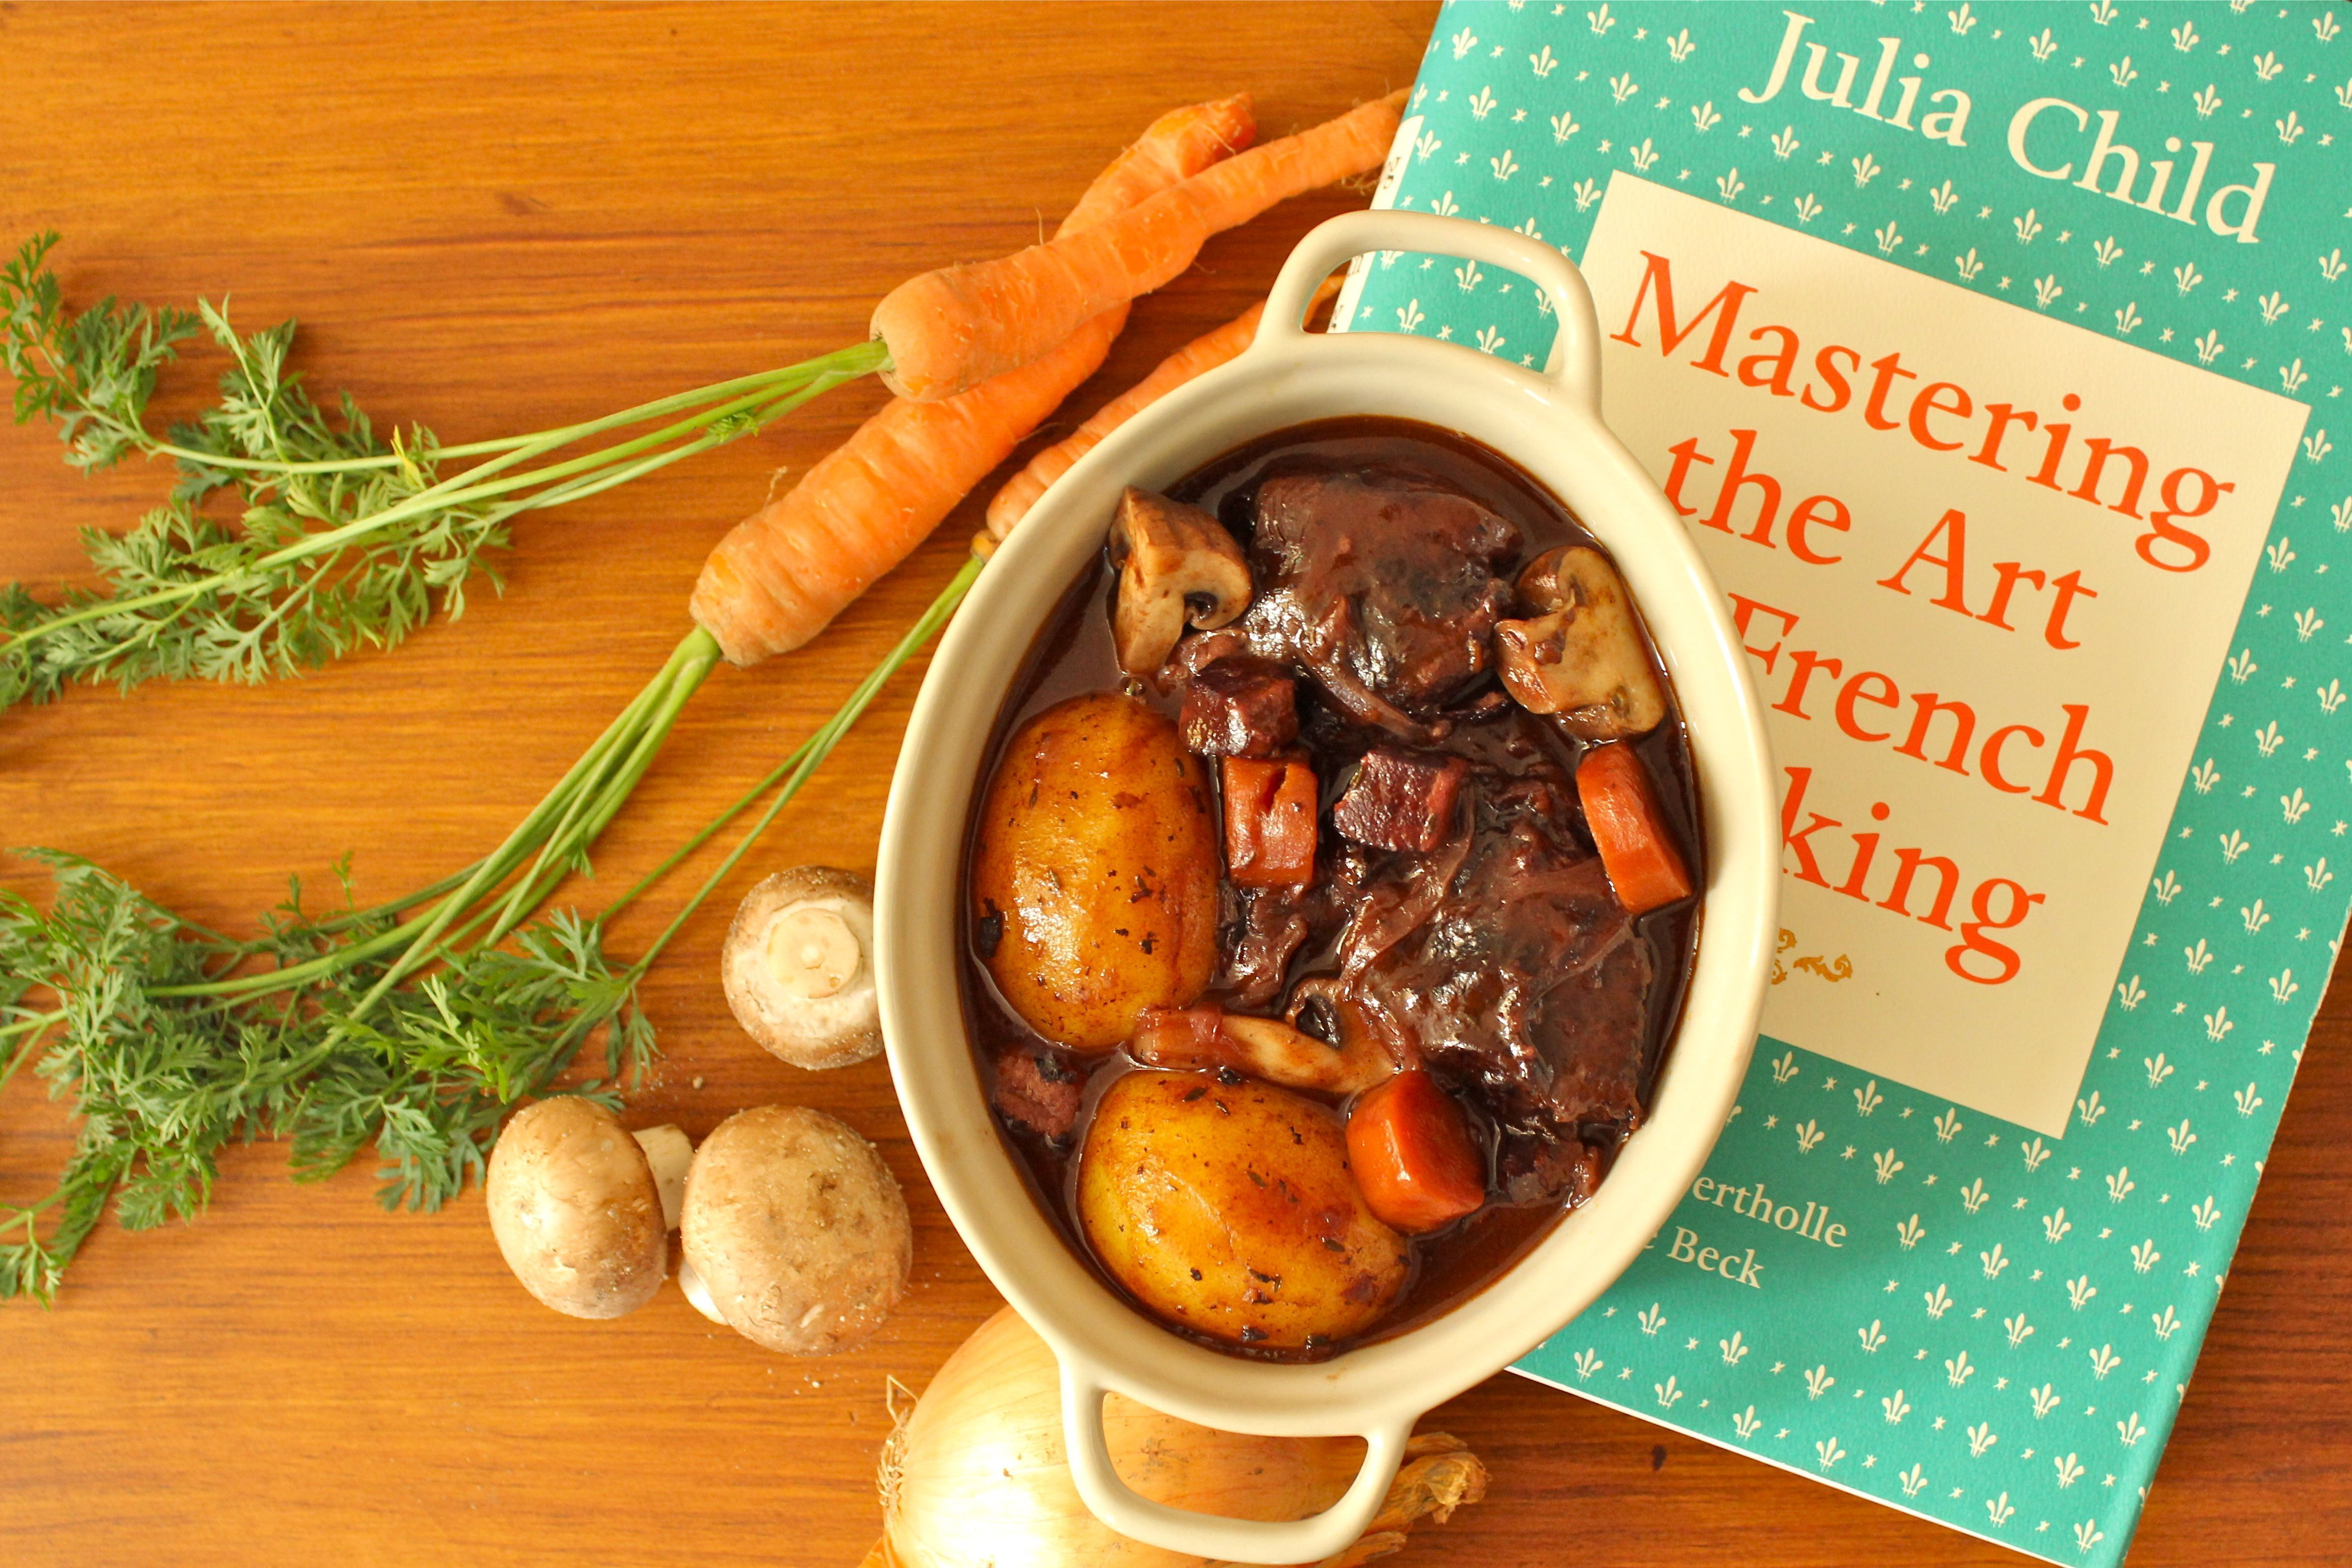 THE boeuf bourguignon de Julia Child